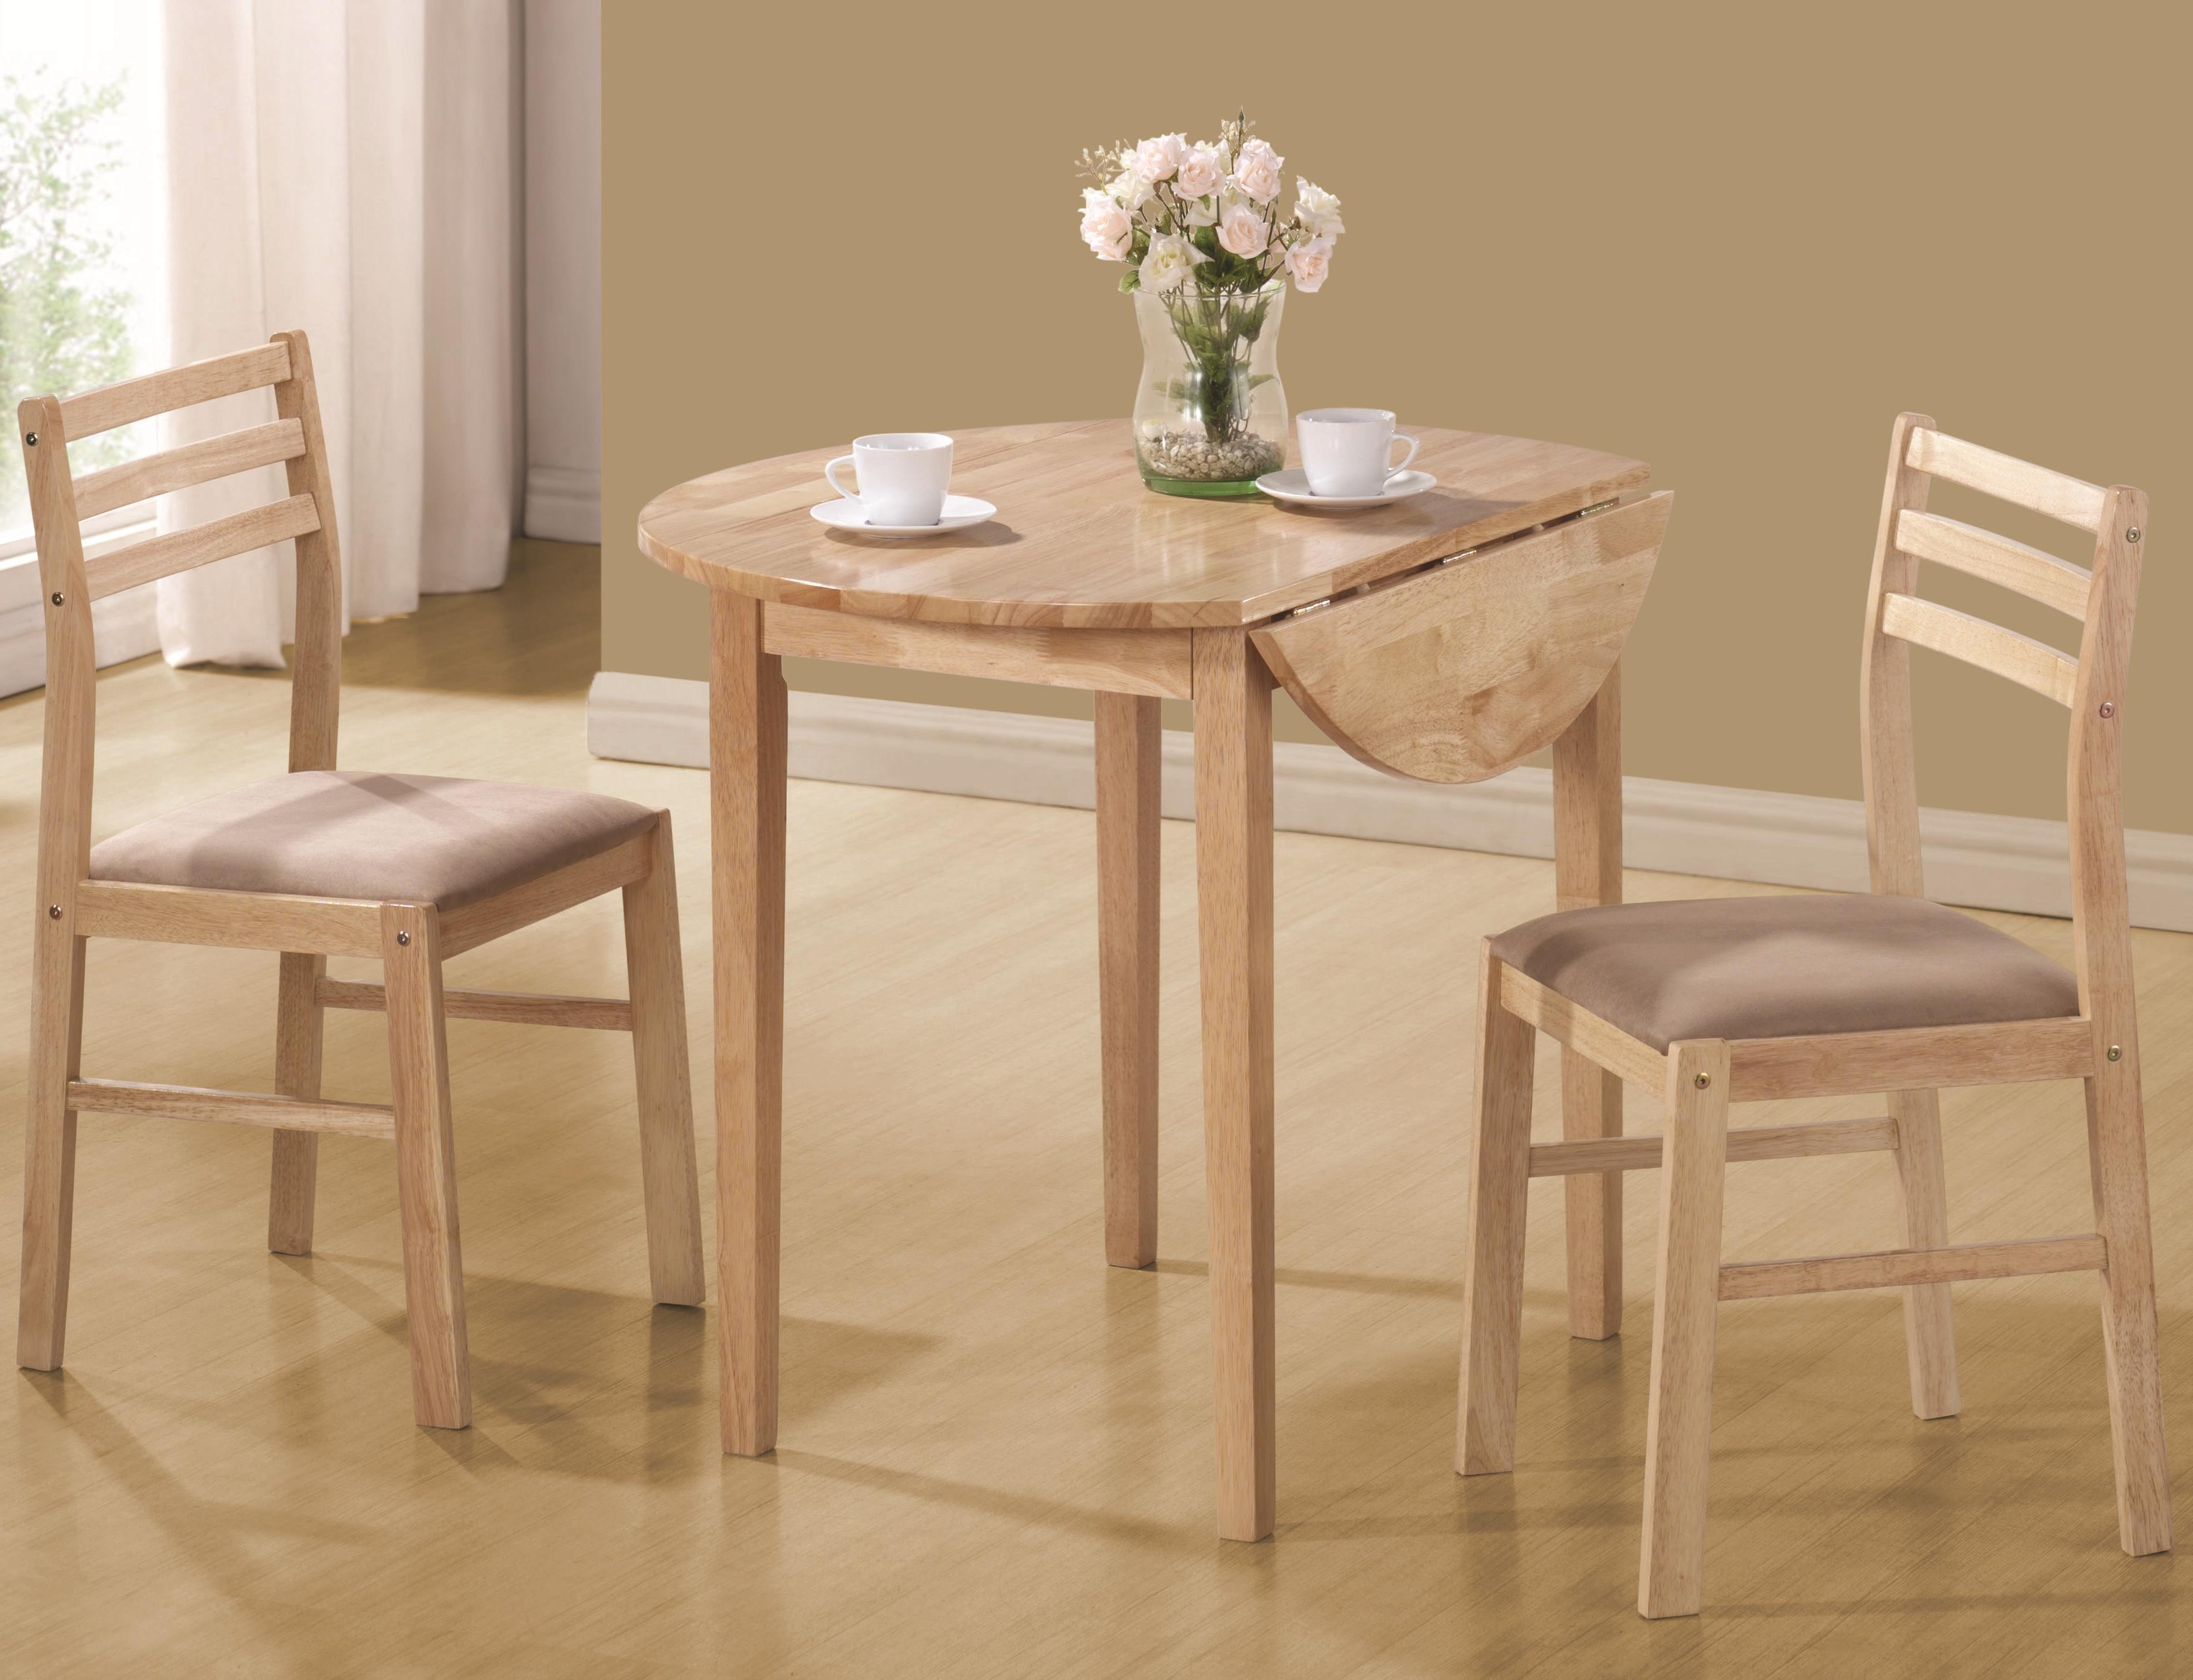 Cheap Kitchen Tables For Small Spaces Dinettes Casual 3 Piece Table Chair Set By Coaster At Dunk Bright Furniture